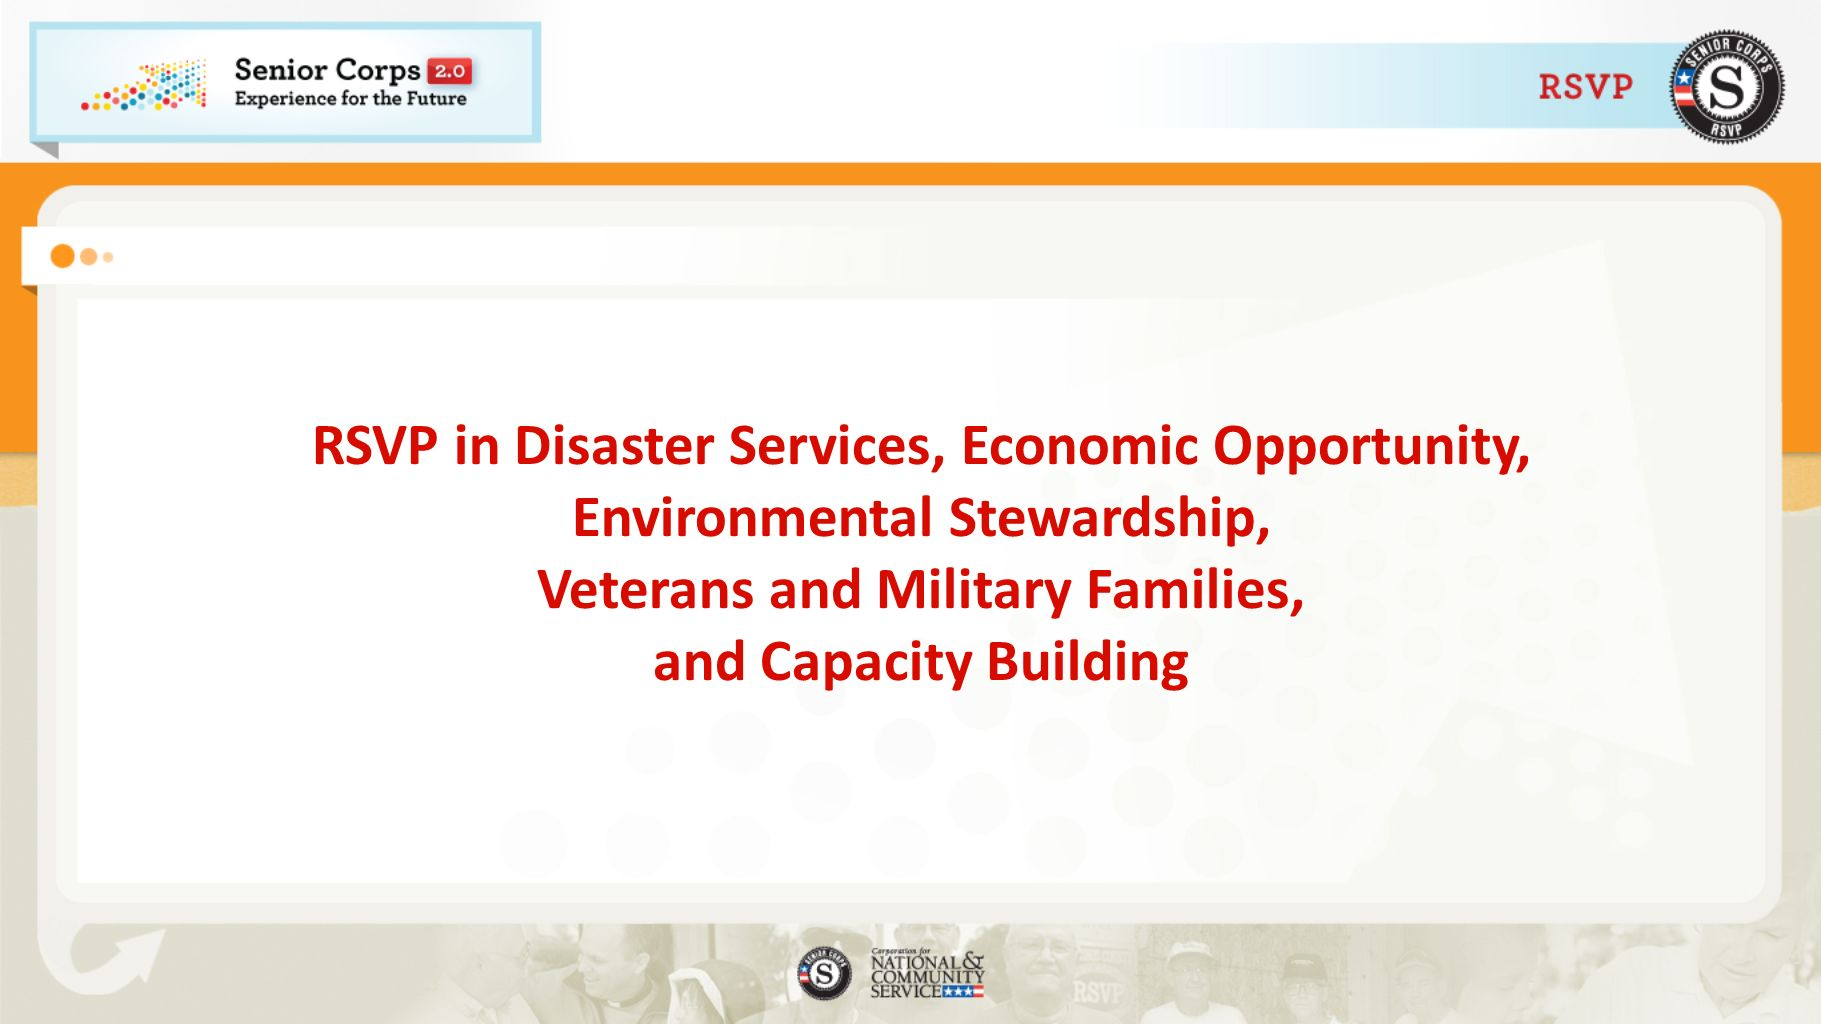 RSVP in Disaster Services, Economic Opportunity, Environmental Stewardship, Veterans and Military Families, and Capacity Building